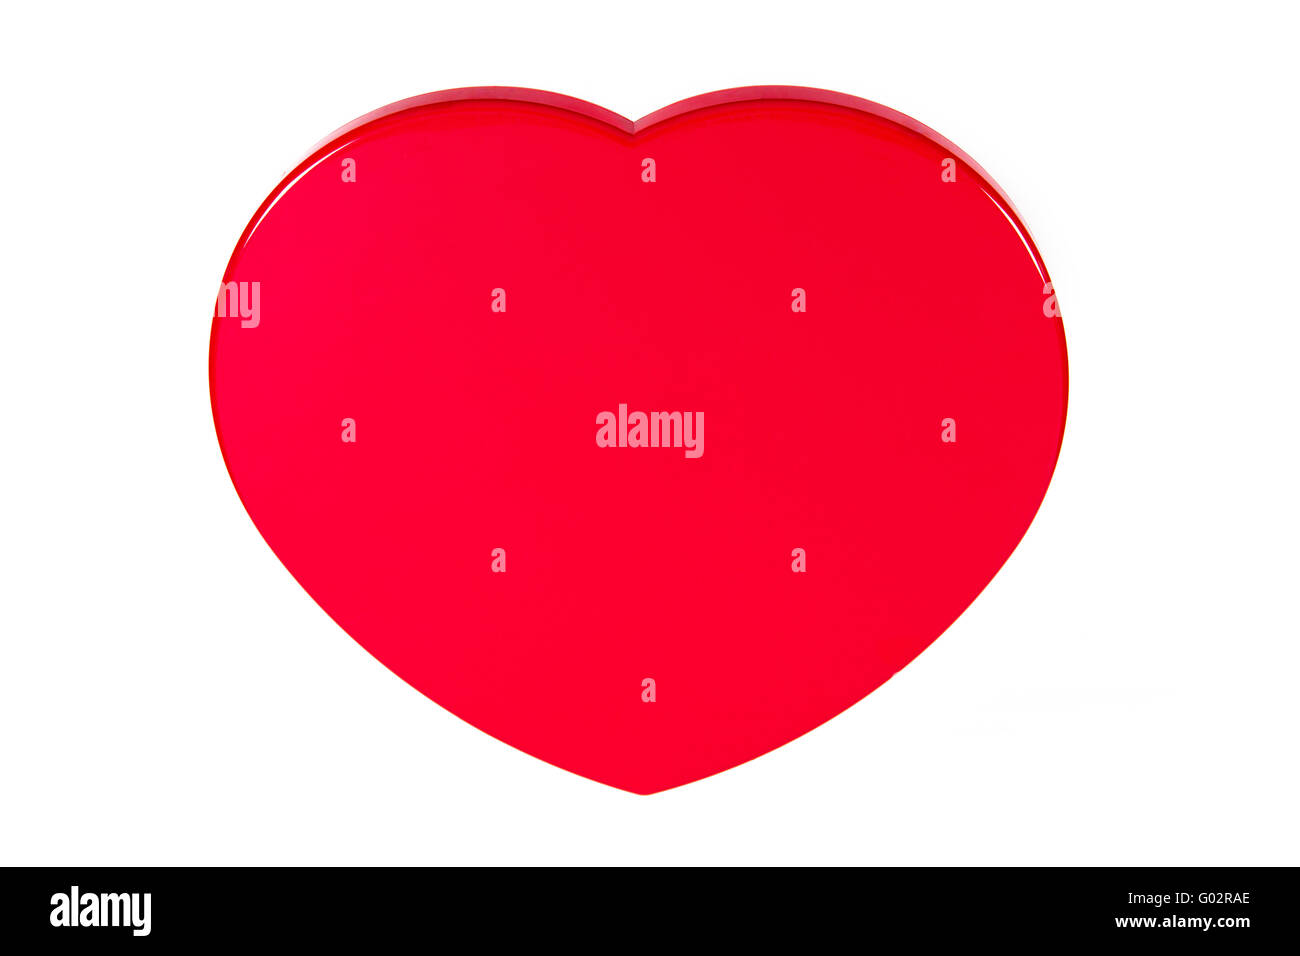 The heart image, as symbol all enamoured, isolated, on a white background - Stock Image